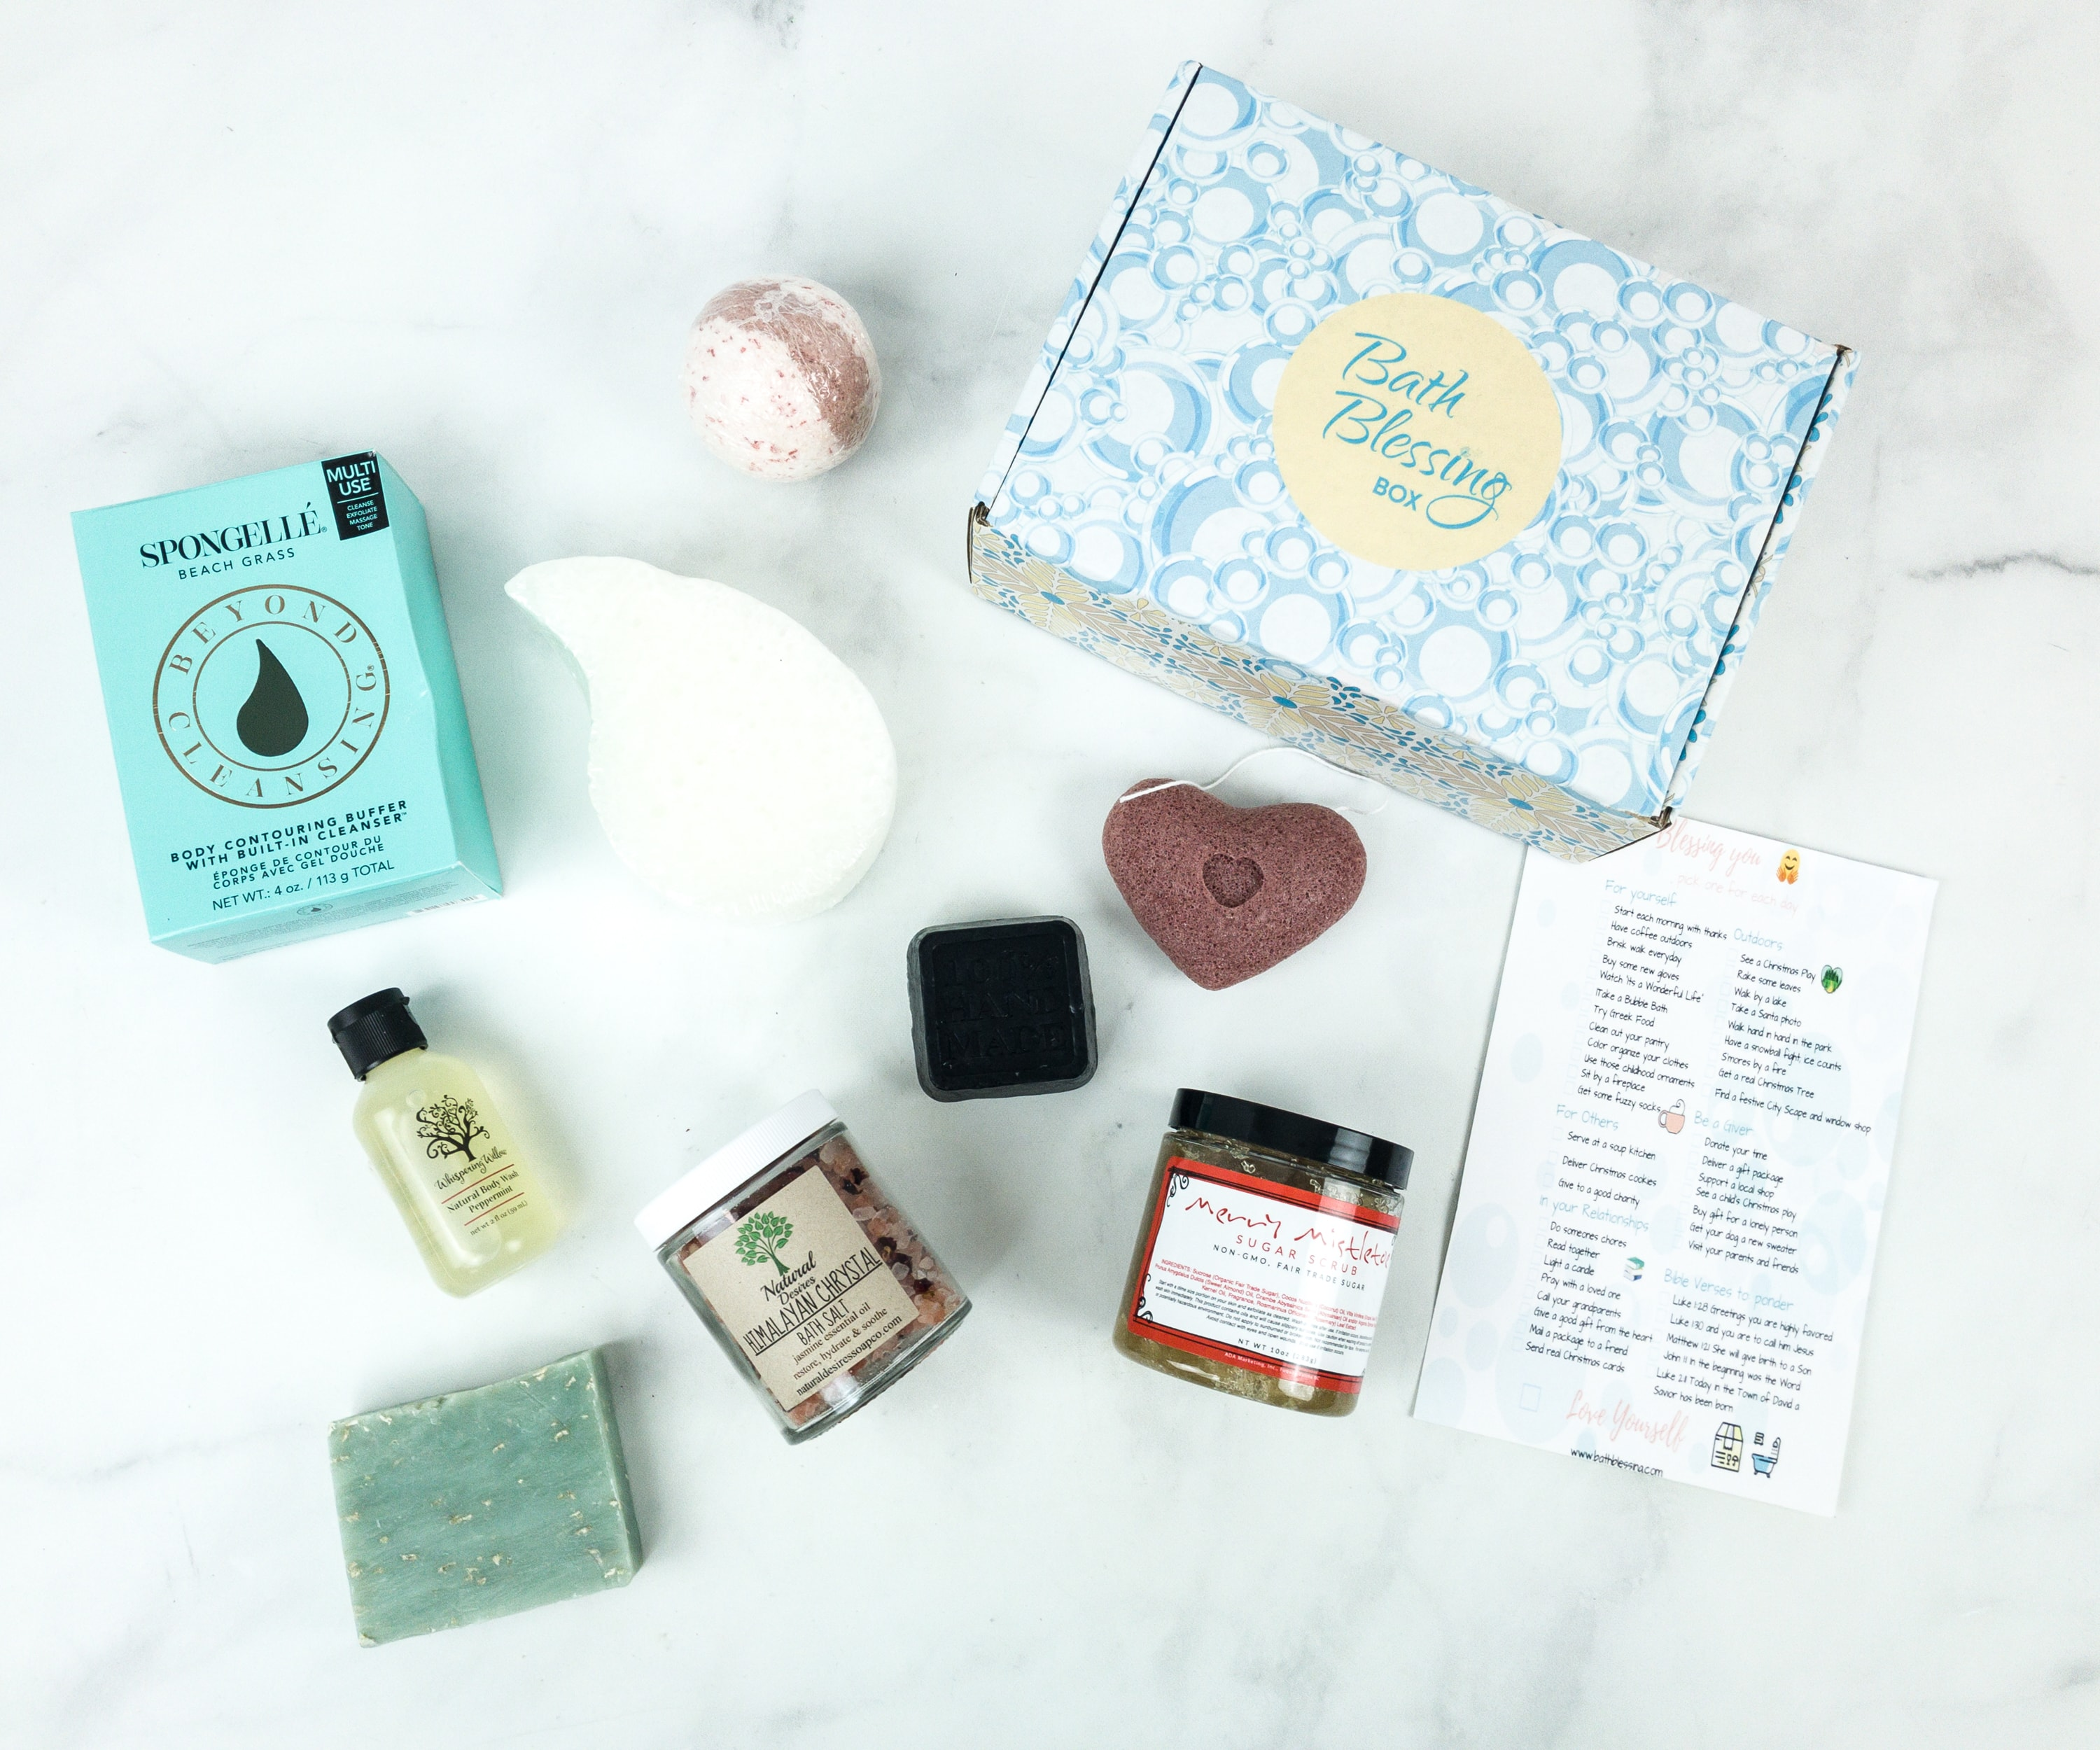 Bath Blessing Box December 2018 Subscription Box Review + Coupon